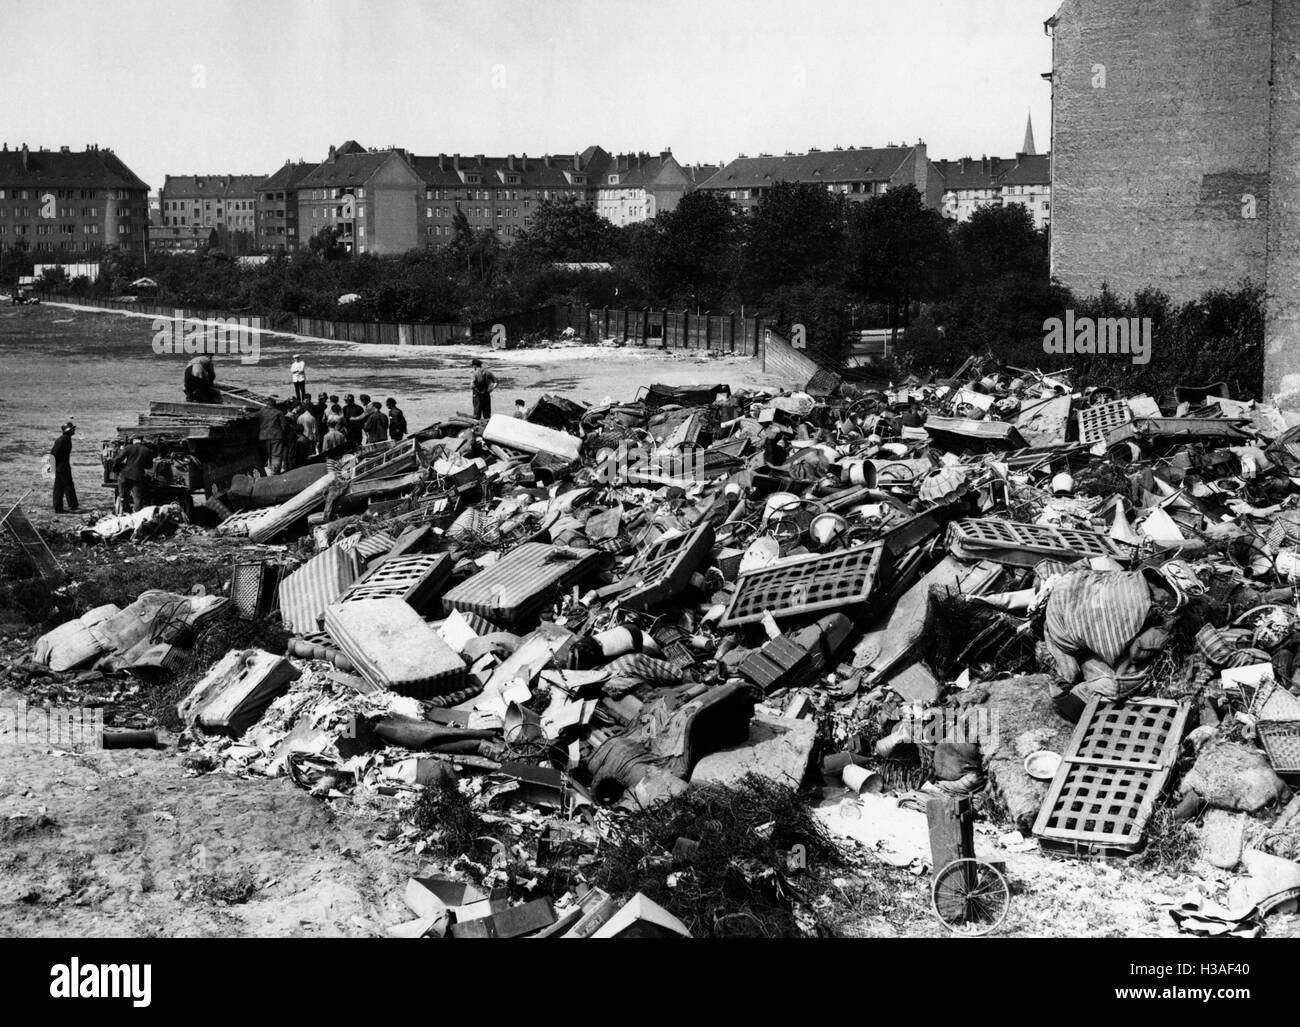 Garbage mountain after a cleanup in Berlin, 1934 - Stock Image